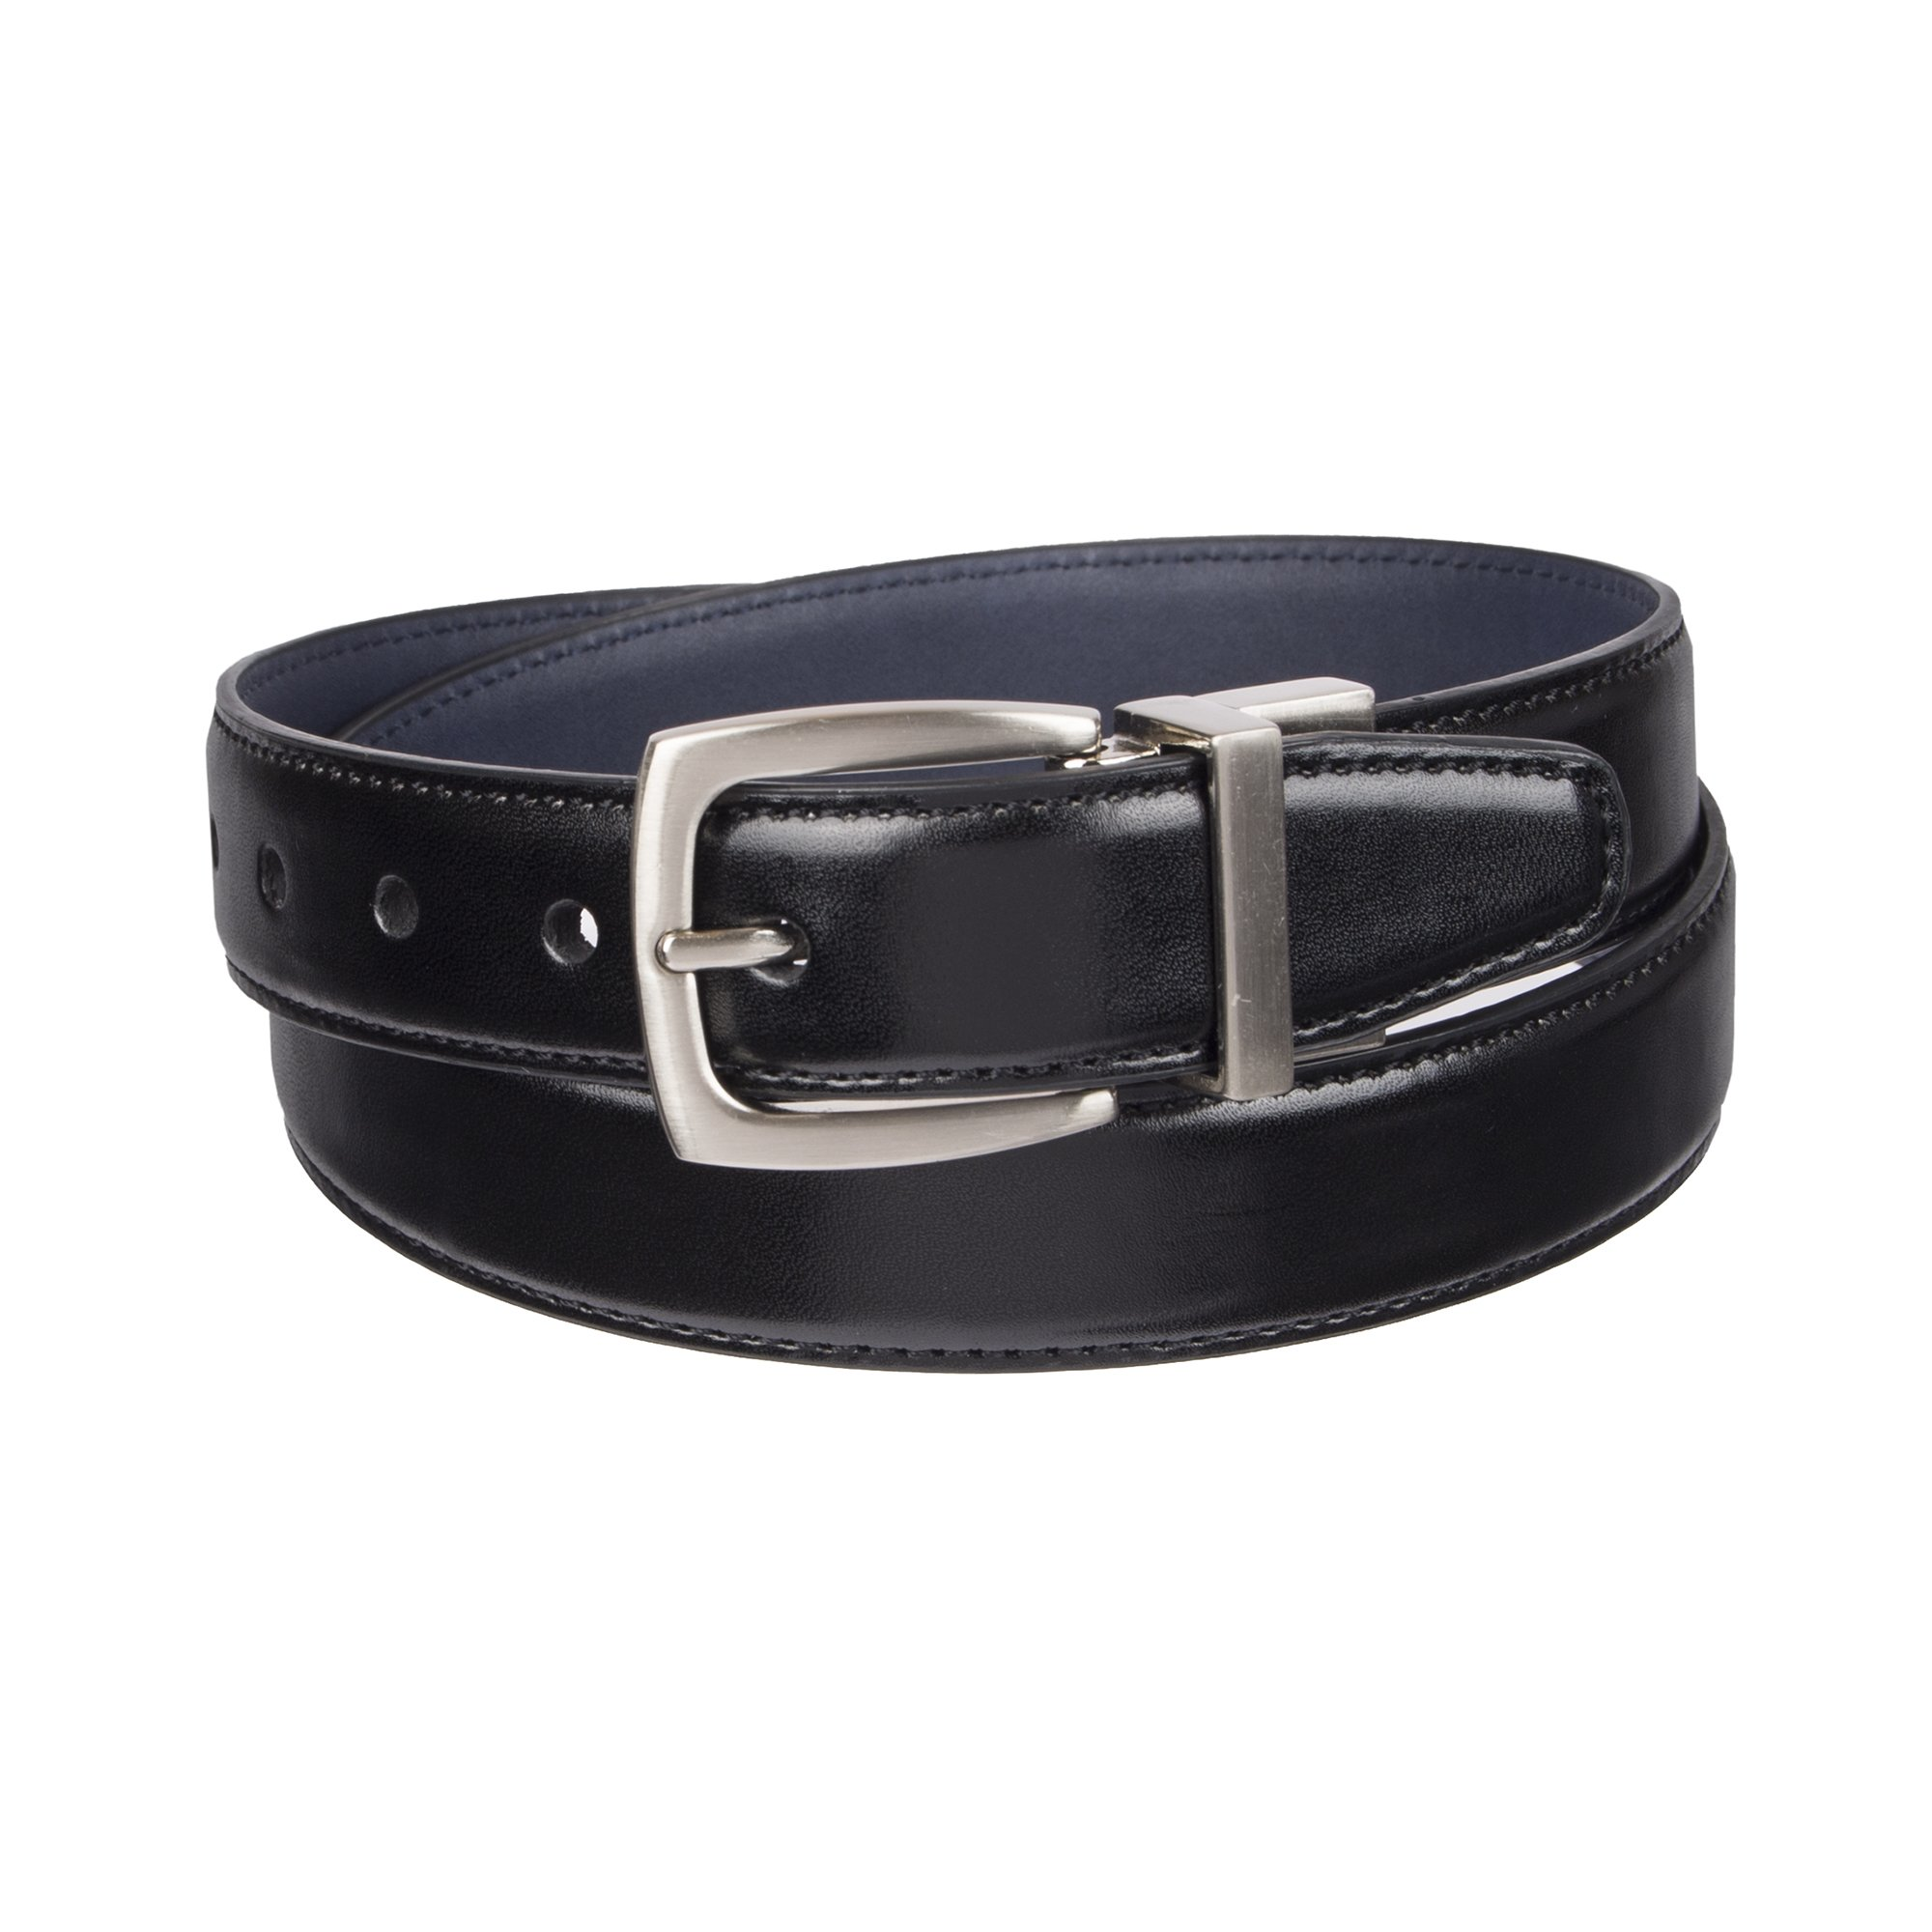 Dockers Big Boy's Dockers Reversible Black-to-Brown Belt, black/navy, Meduim (26-28 Inches)